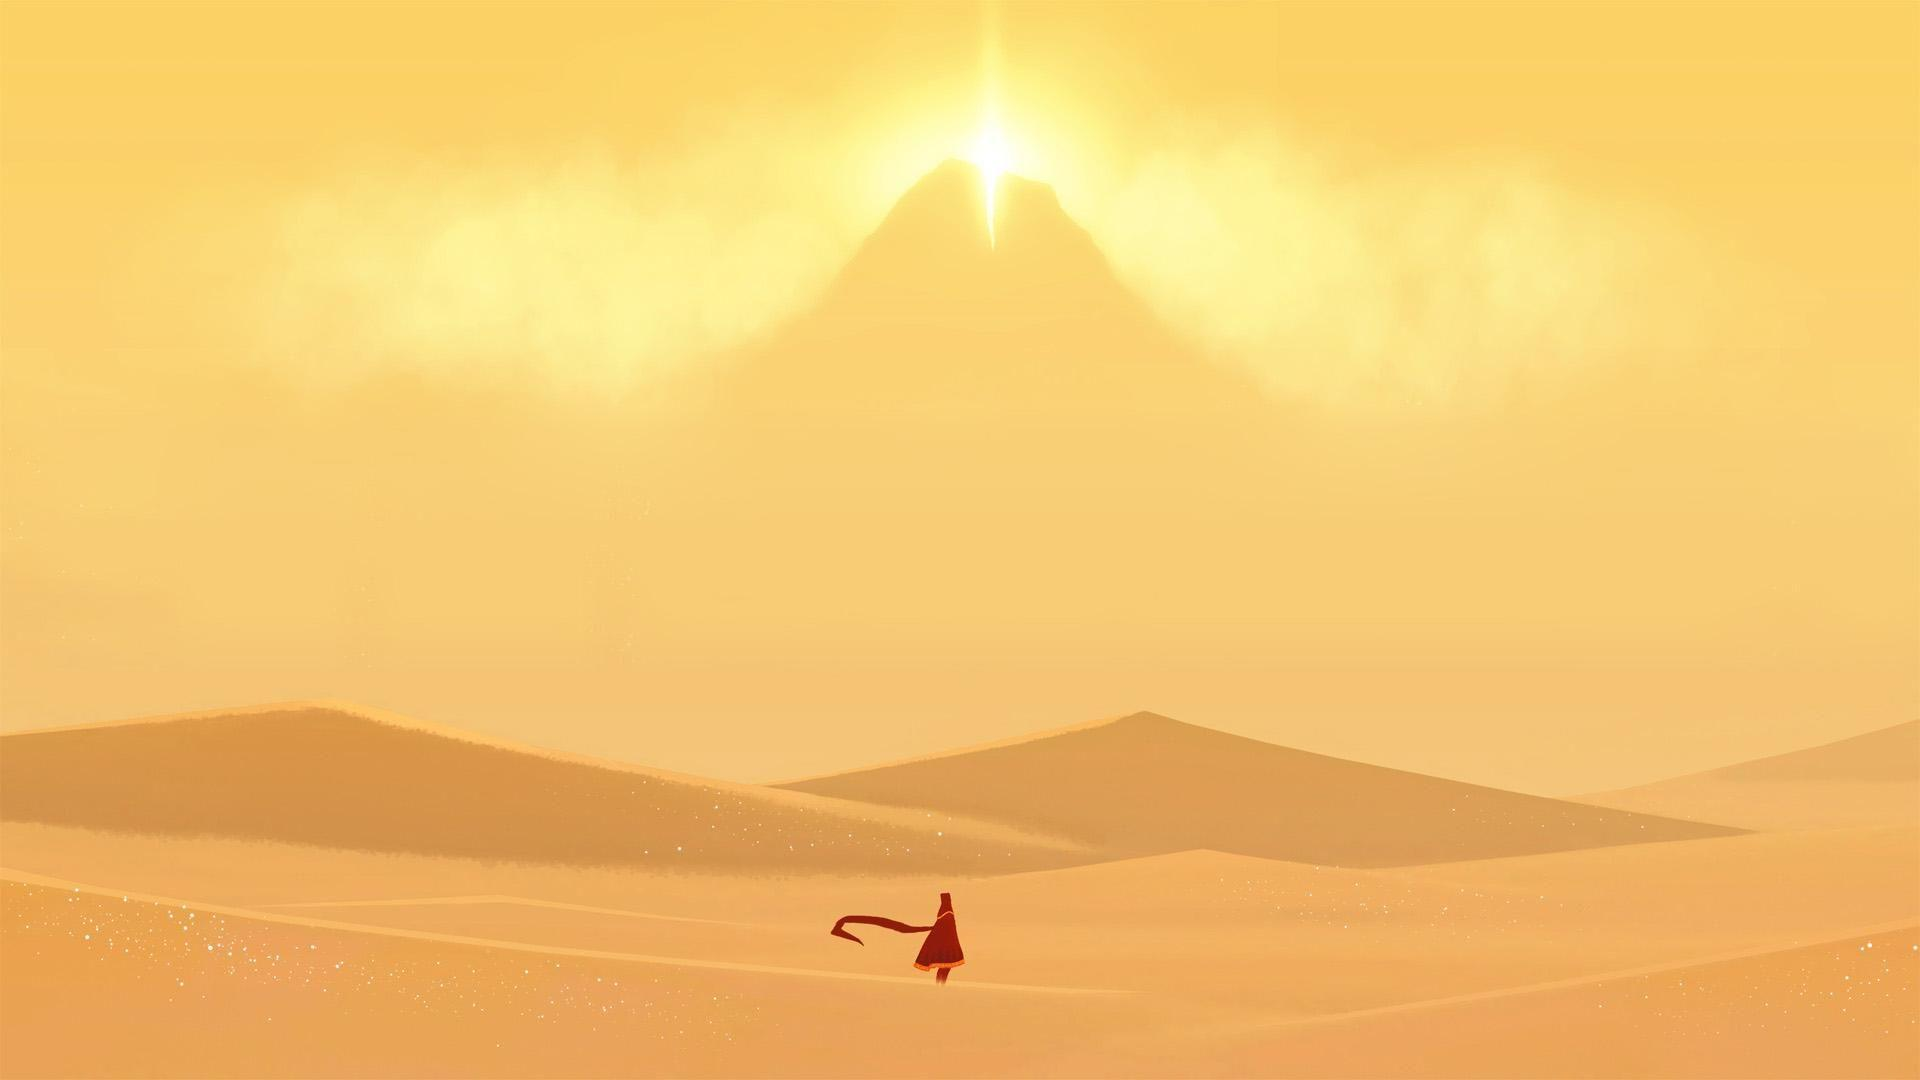 JOURNEY WALLPAPER